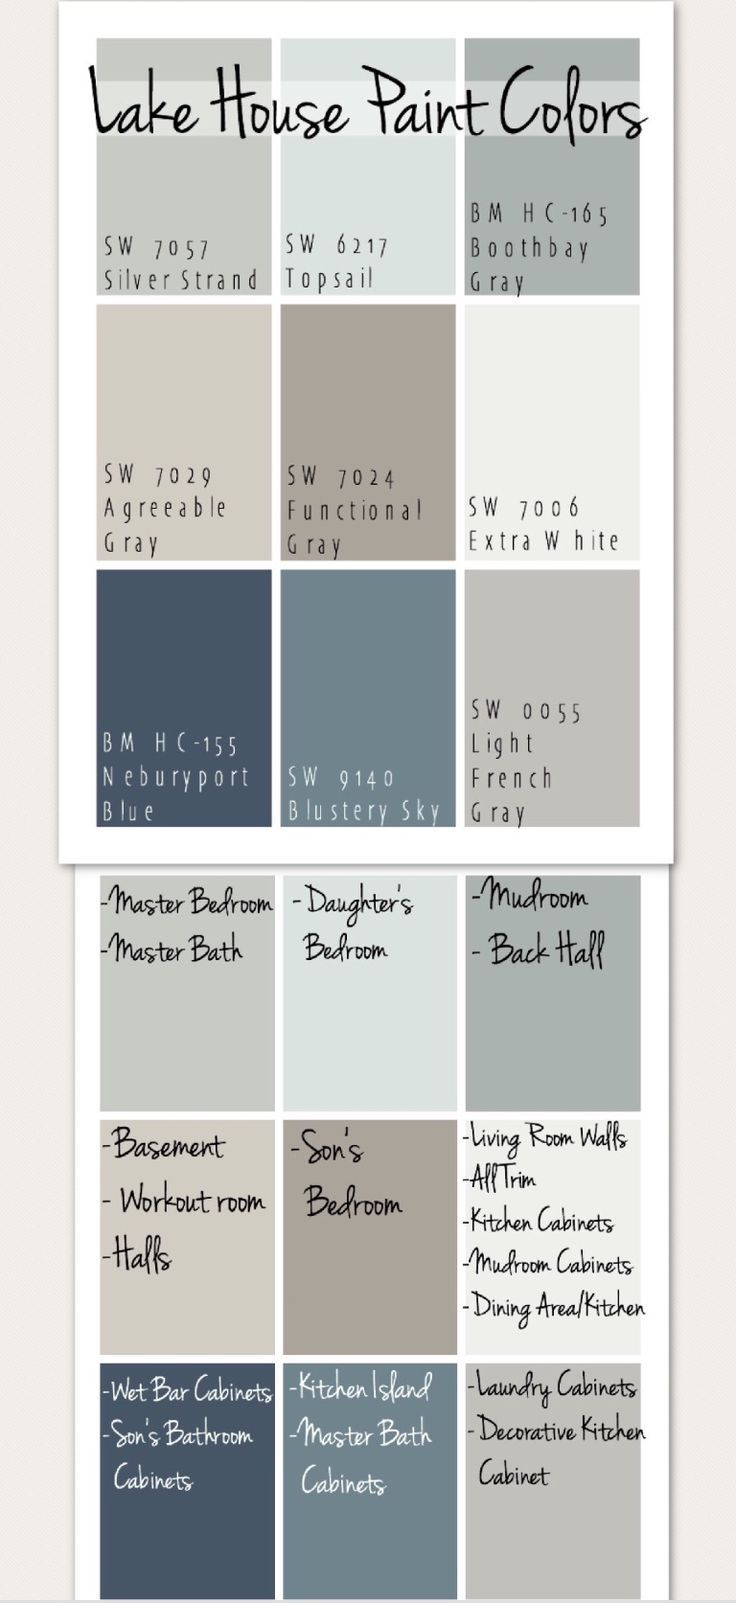 Sherwin Williams Lakehouse Palette Country Home Paint Colors Living Room Paint Colors Paint Colors For Home Paint Colors For Living Room Room Paint Colors